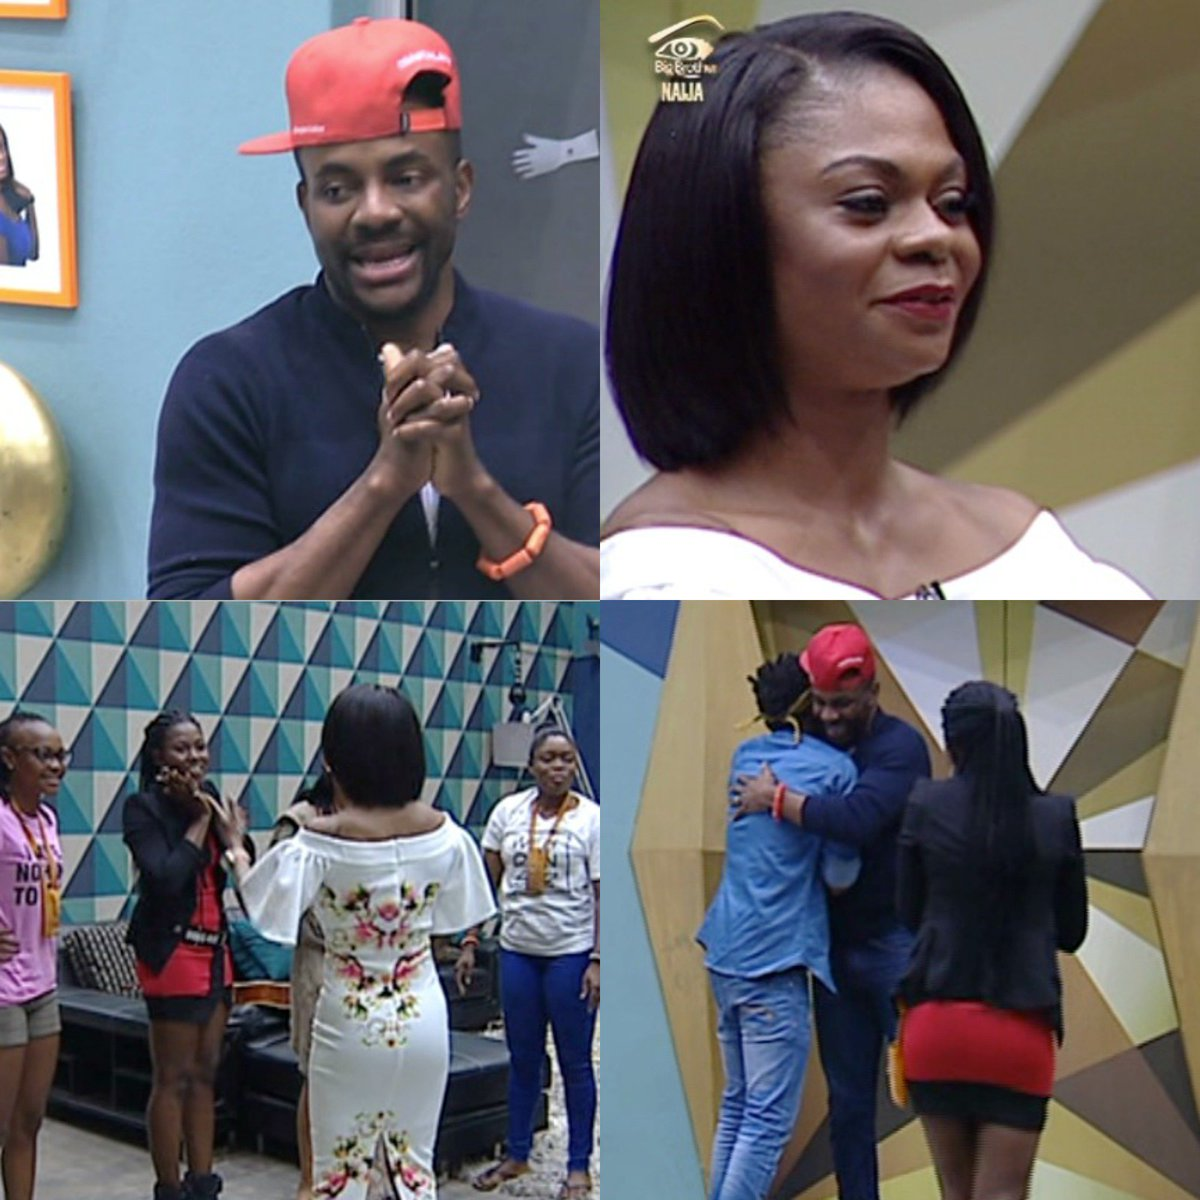 #BBNaija: Ex-BB Winner, Karen Igho Rakos and BB Host, Ebuka visit the top 5 finalists in the house [photos]